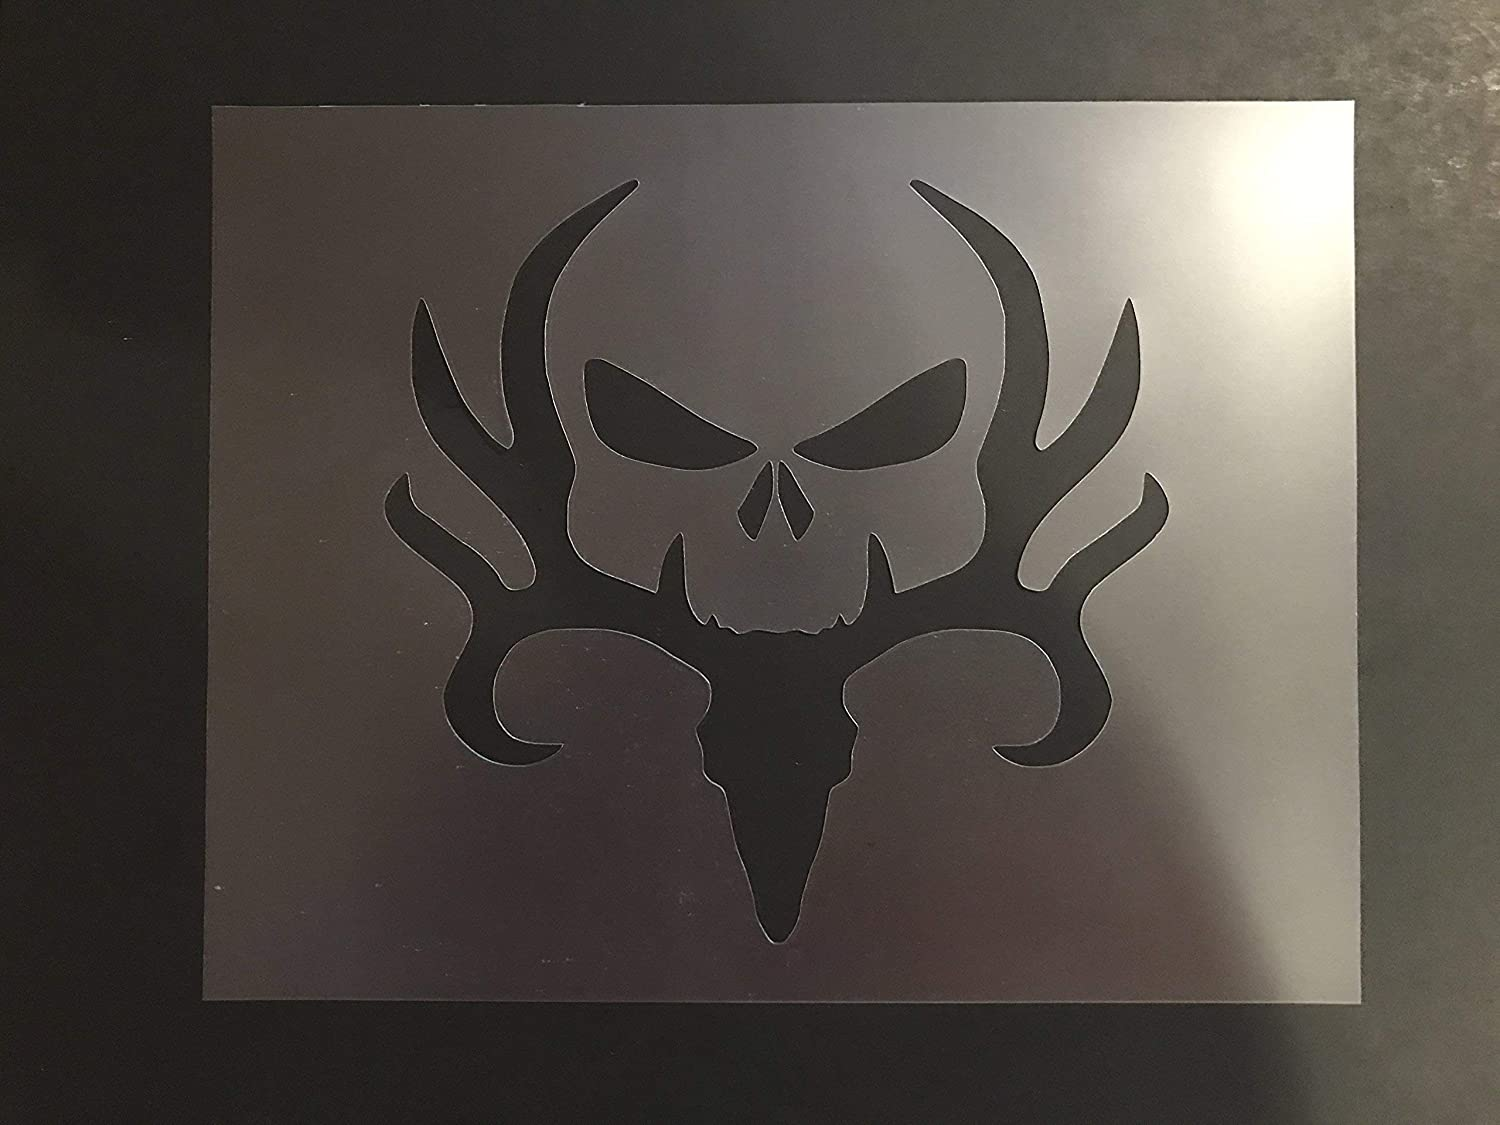 Deer and Skull Stencil #1 Reusable 10 mil Thick 8in x 10.5in sheet